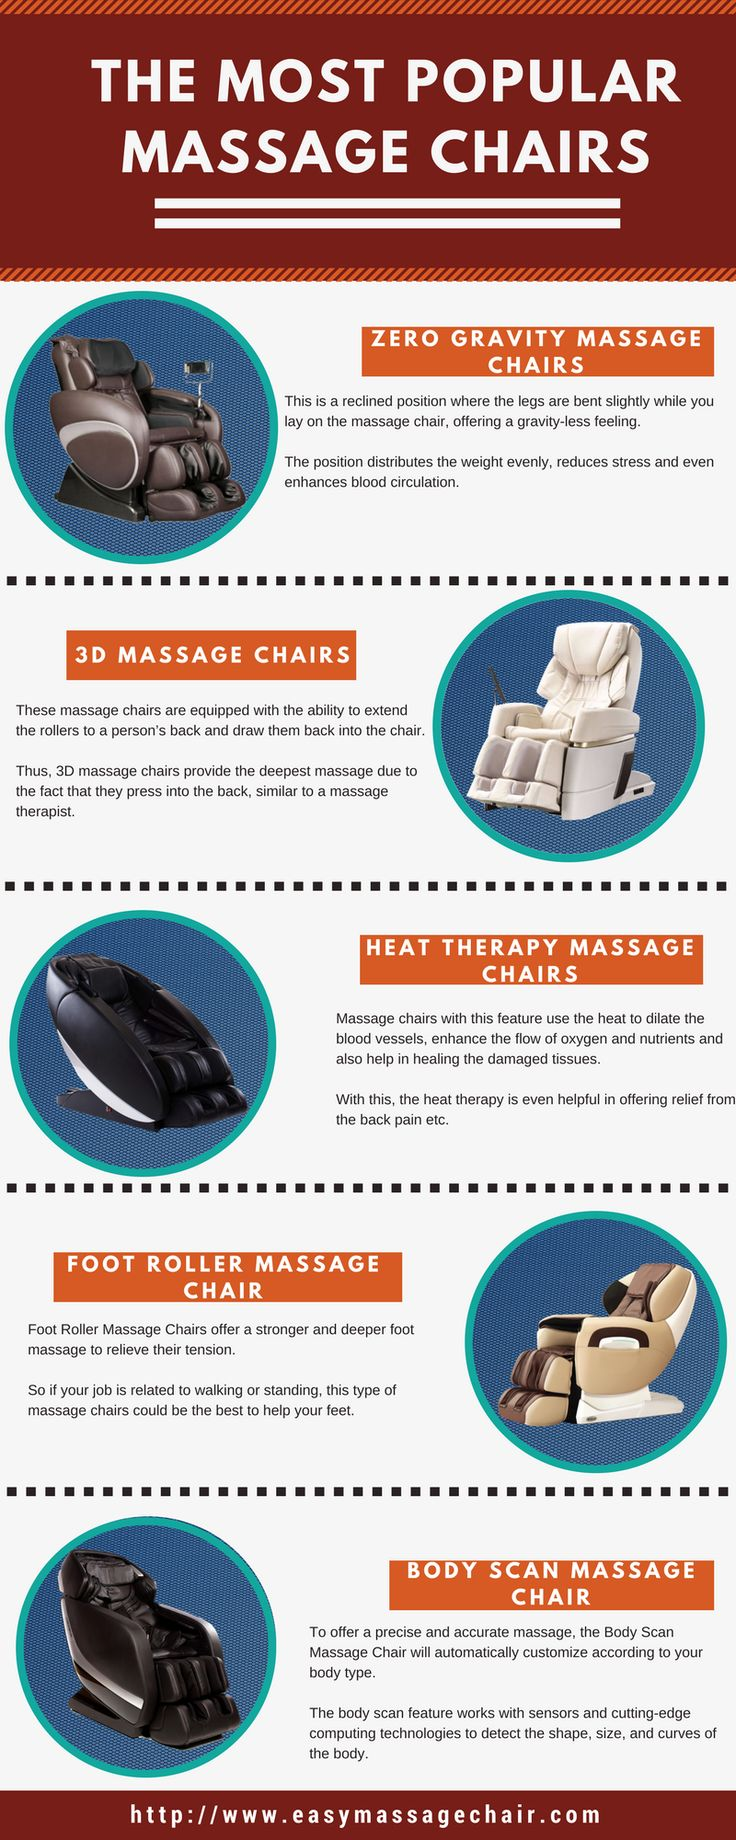 'Easy Massage Chair'- the online hub to obtain the best-quality massage chairs at the cheapest prices. We deliver products that satisfy the needs of your body and never pose any burden on your pockets.  Get free shipping and free returns with 100% money guarantee. 'Easy Massage Chair'- the place to obtain the most profitable deals.